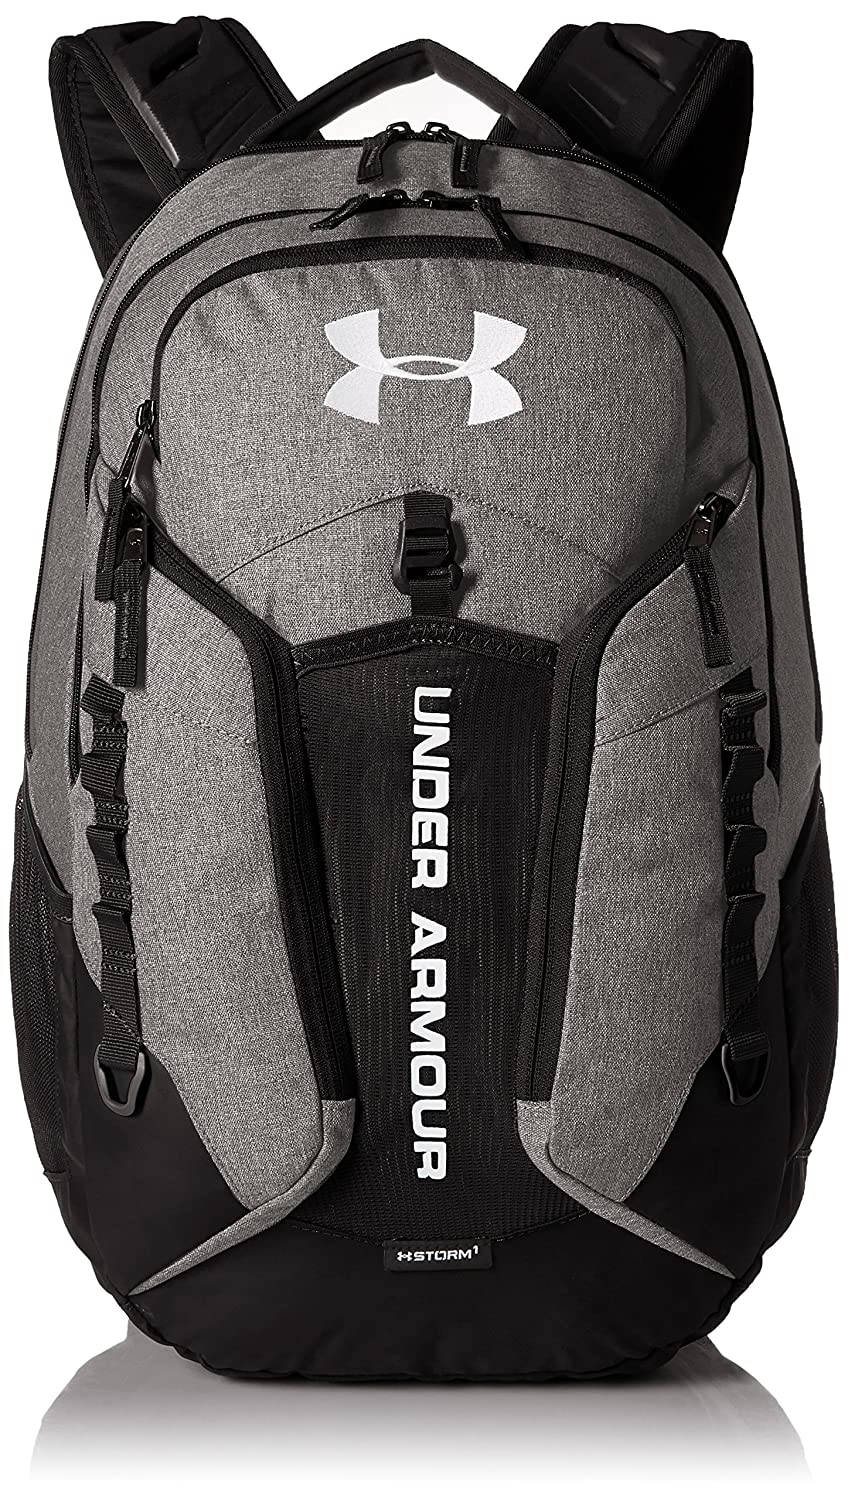 8d043a0b8d Buy under armour storm contender backpack online at low prices in india jpg  848x1500 Under armour